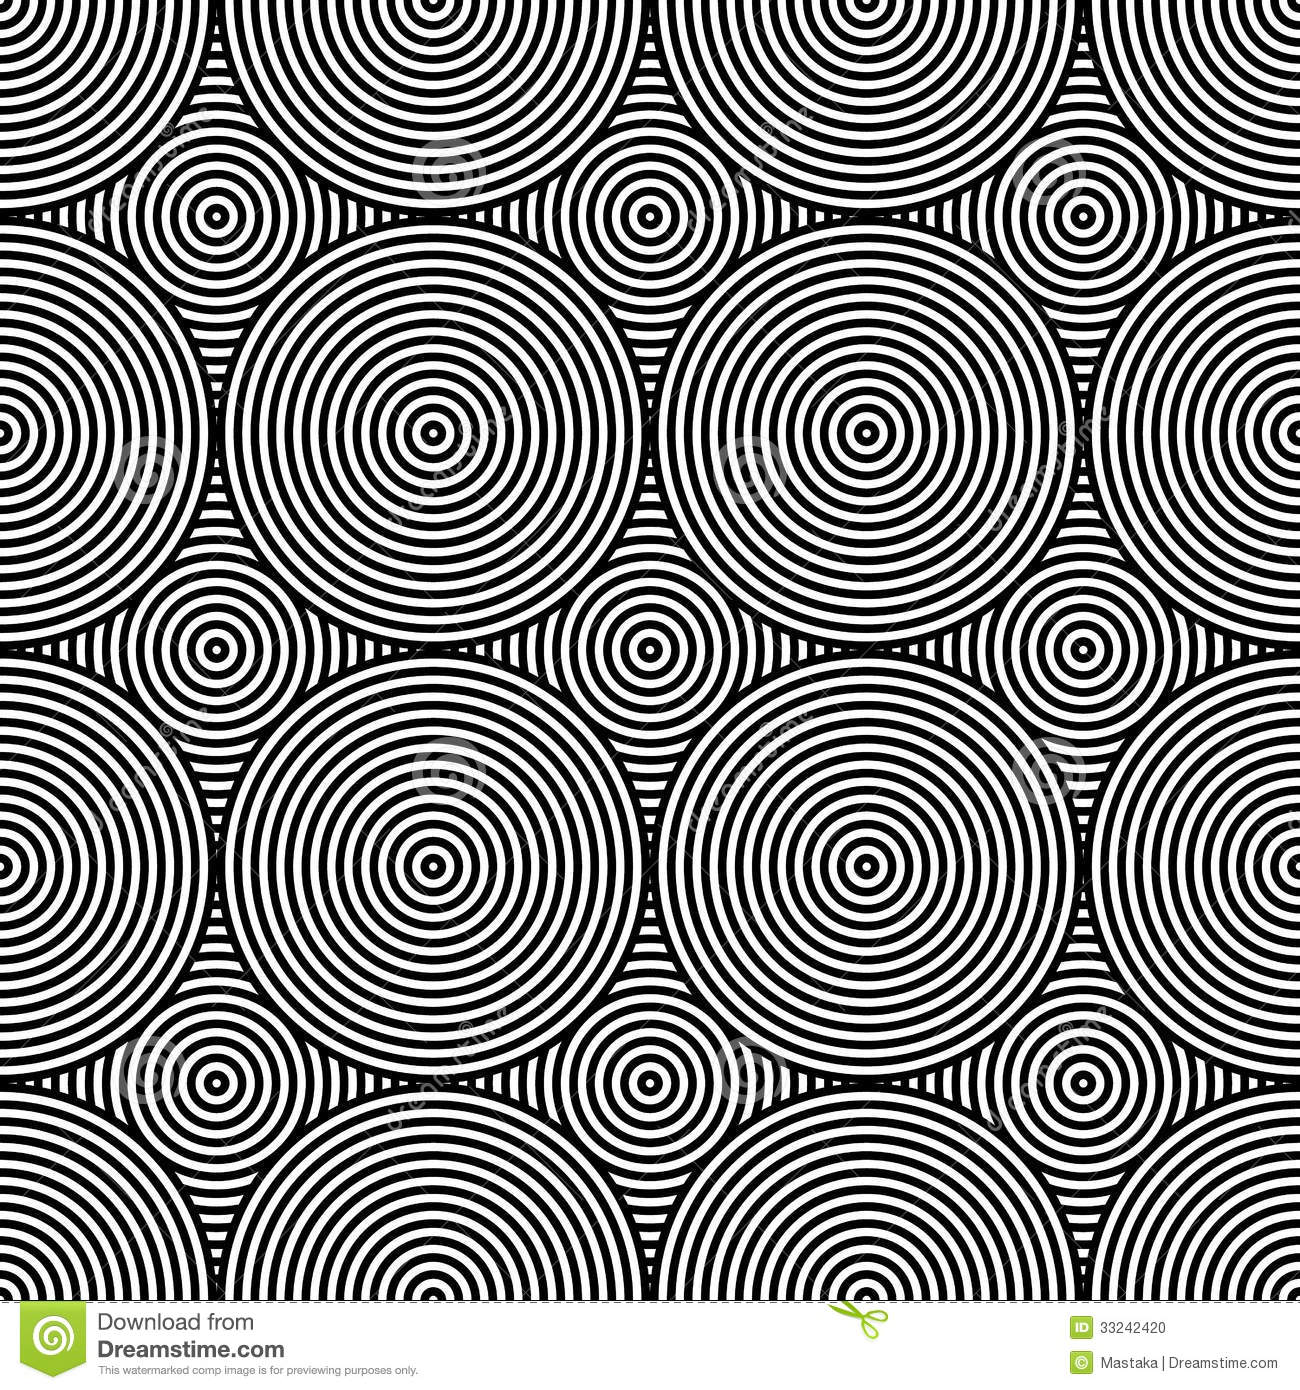 Black And White Psychedelic Circular Textile Stock Photo